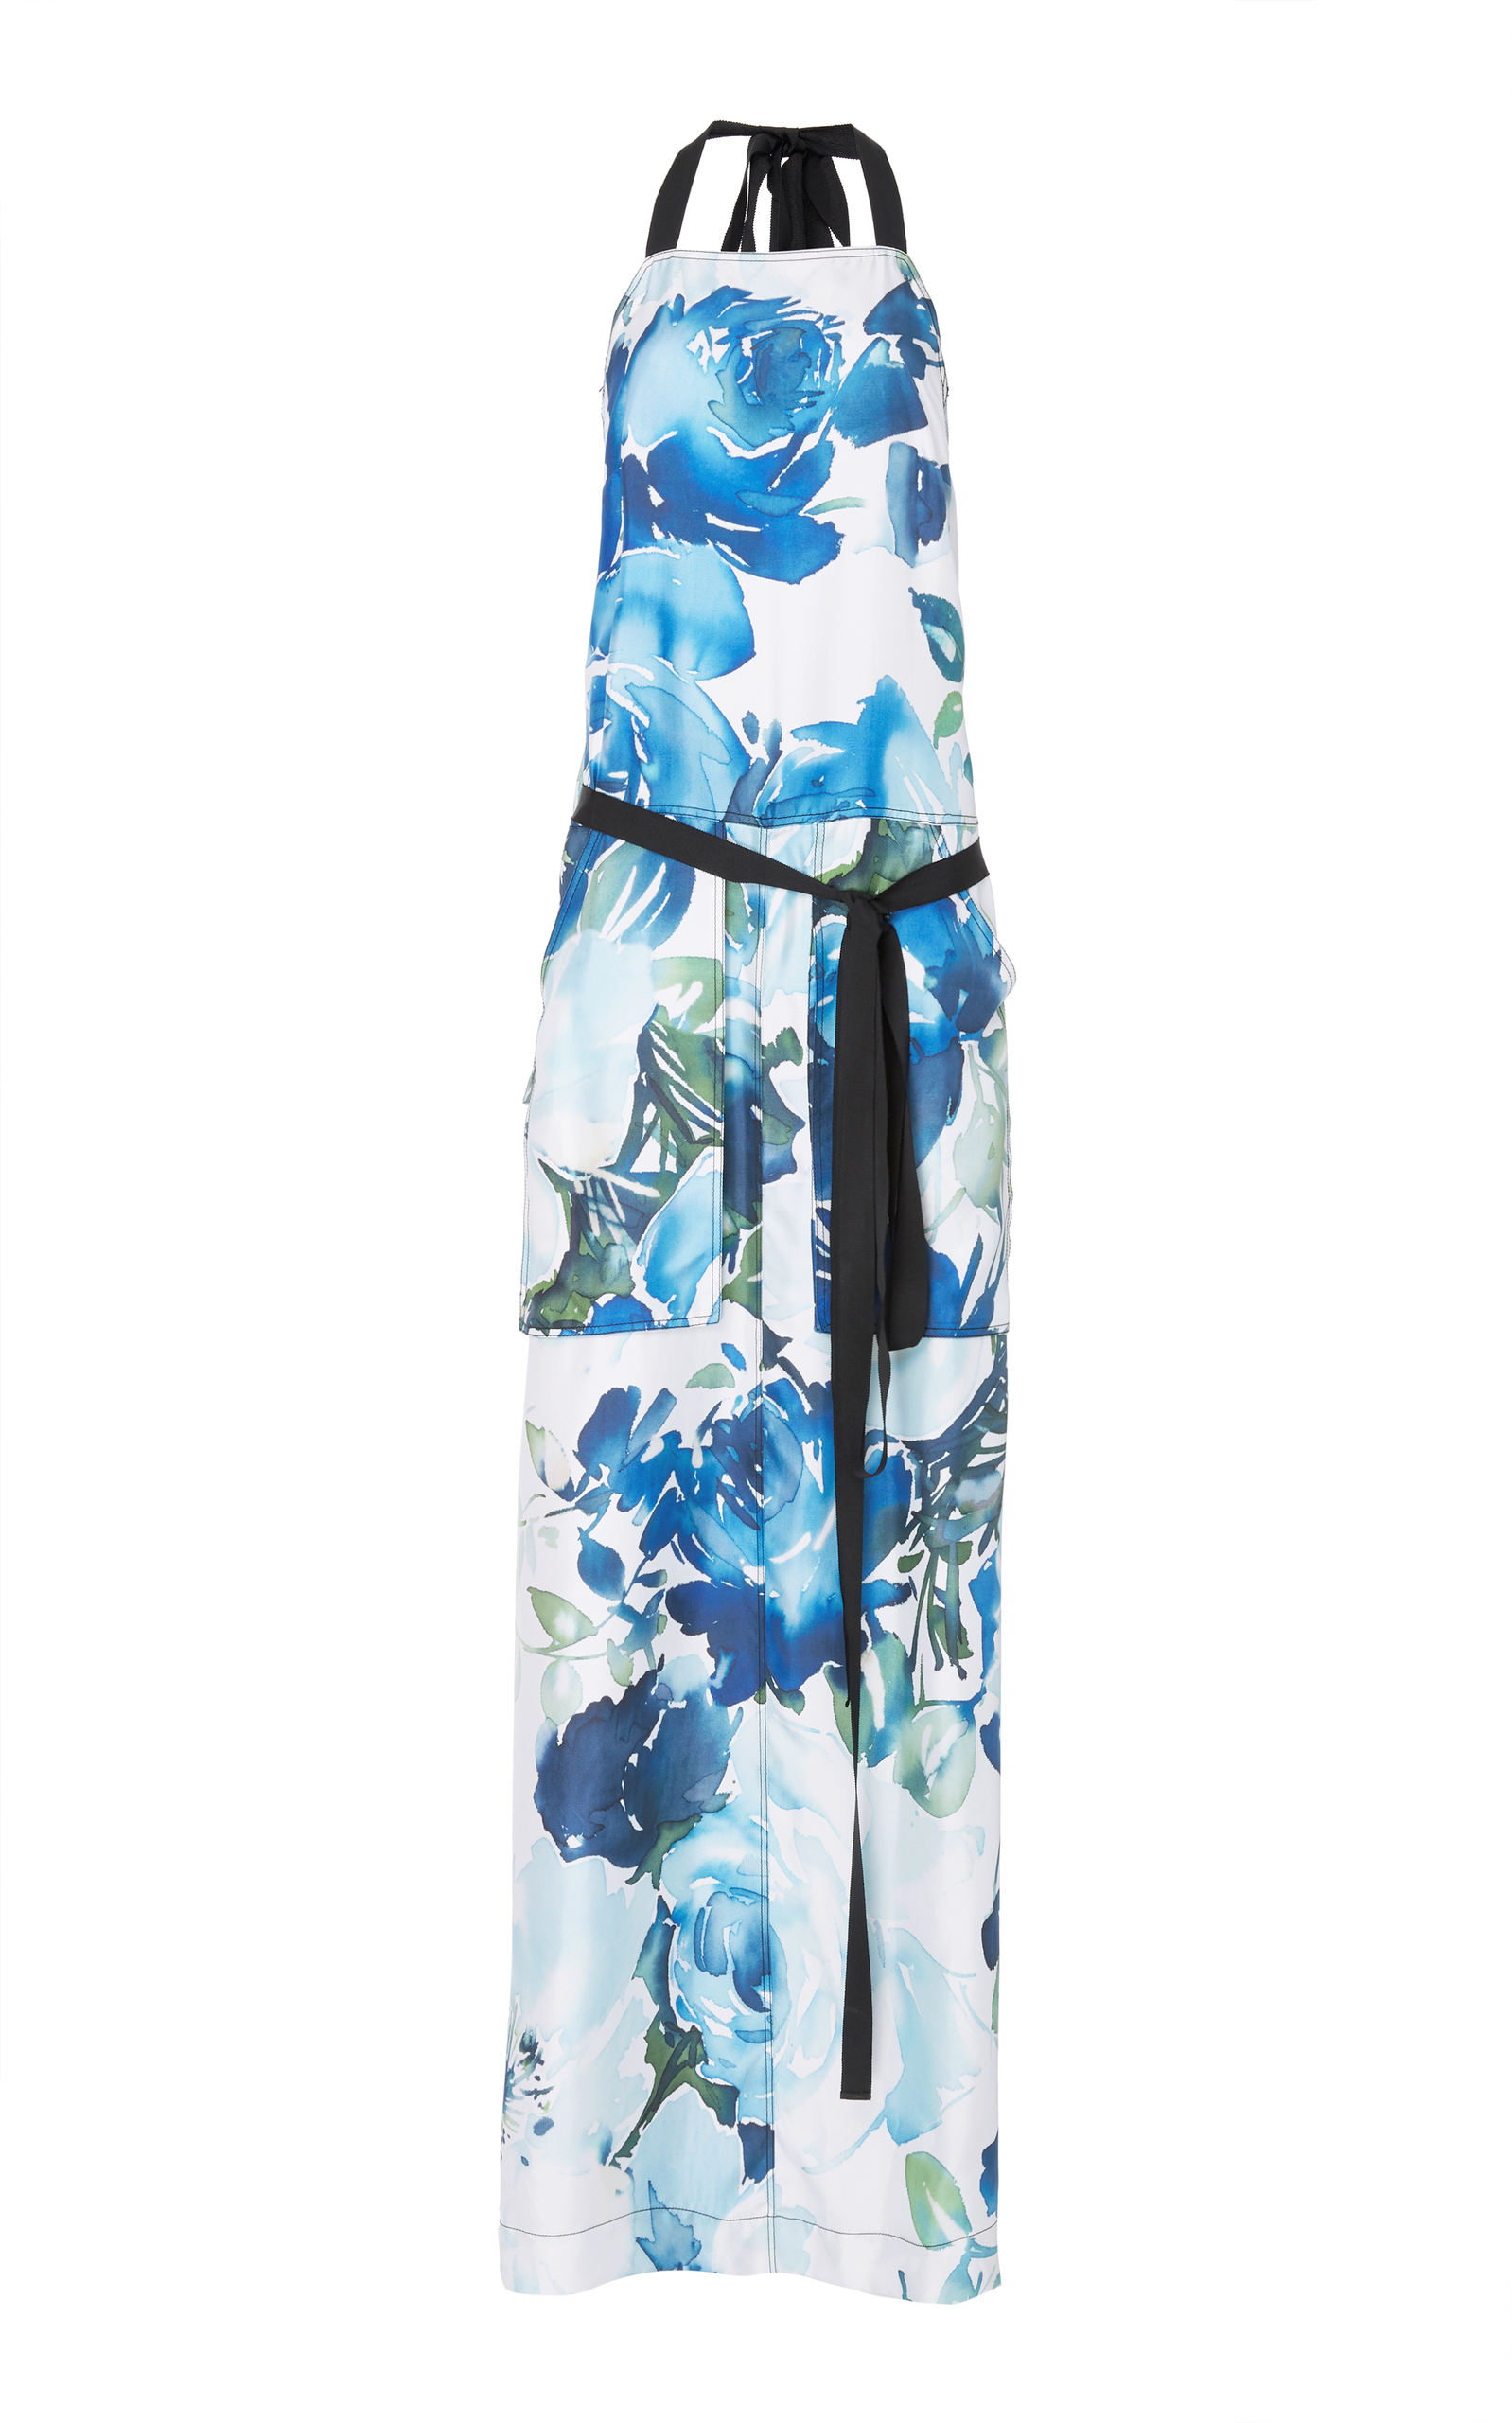 BY. BONNIE YOUNG FLORAL SILK APRON DRESS